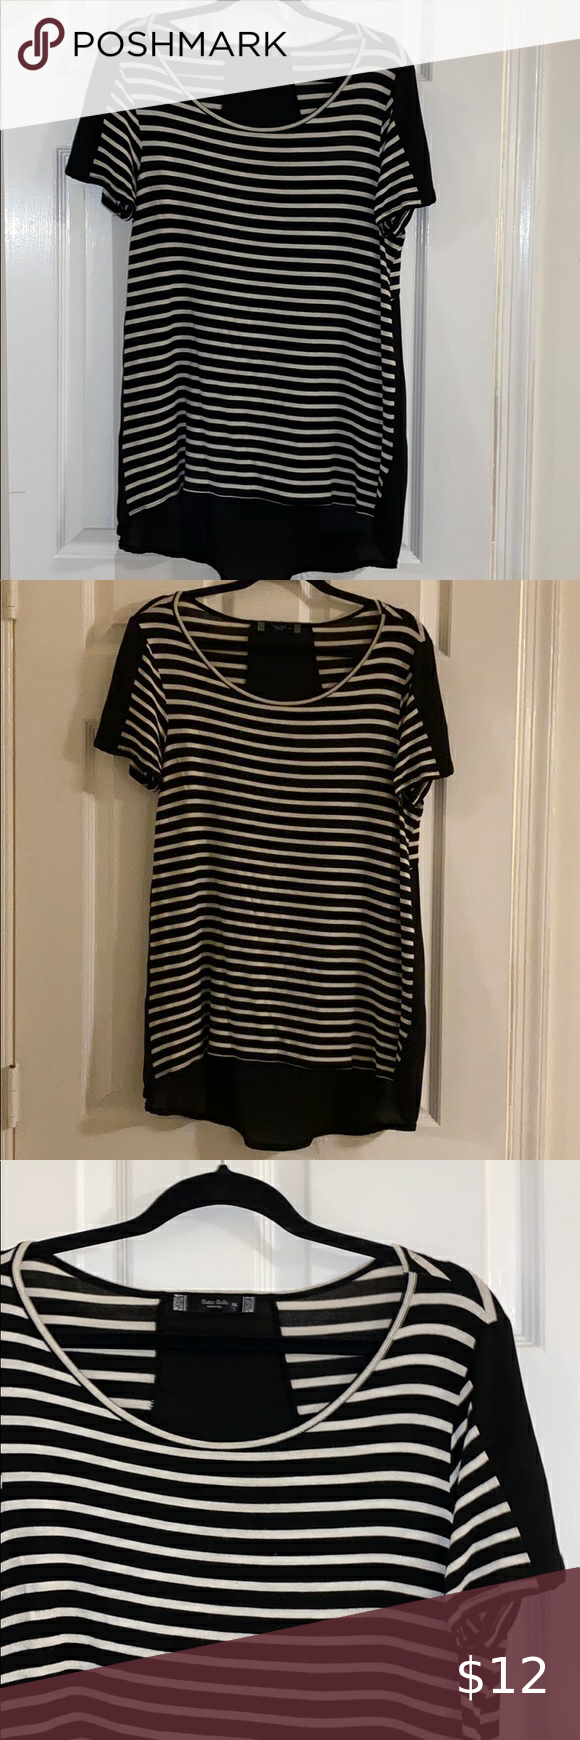 Black & White Maternity Shirt Striped shirt sleeve with black and white stripes on front